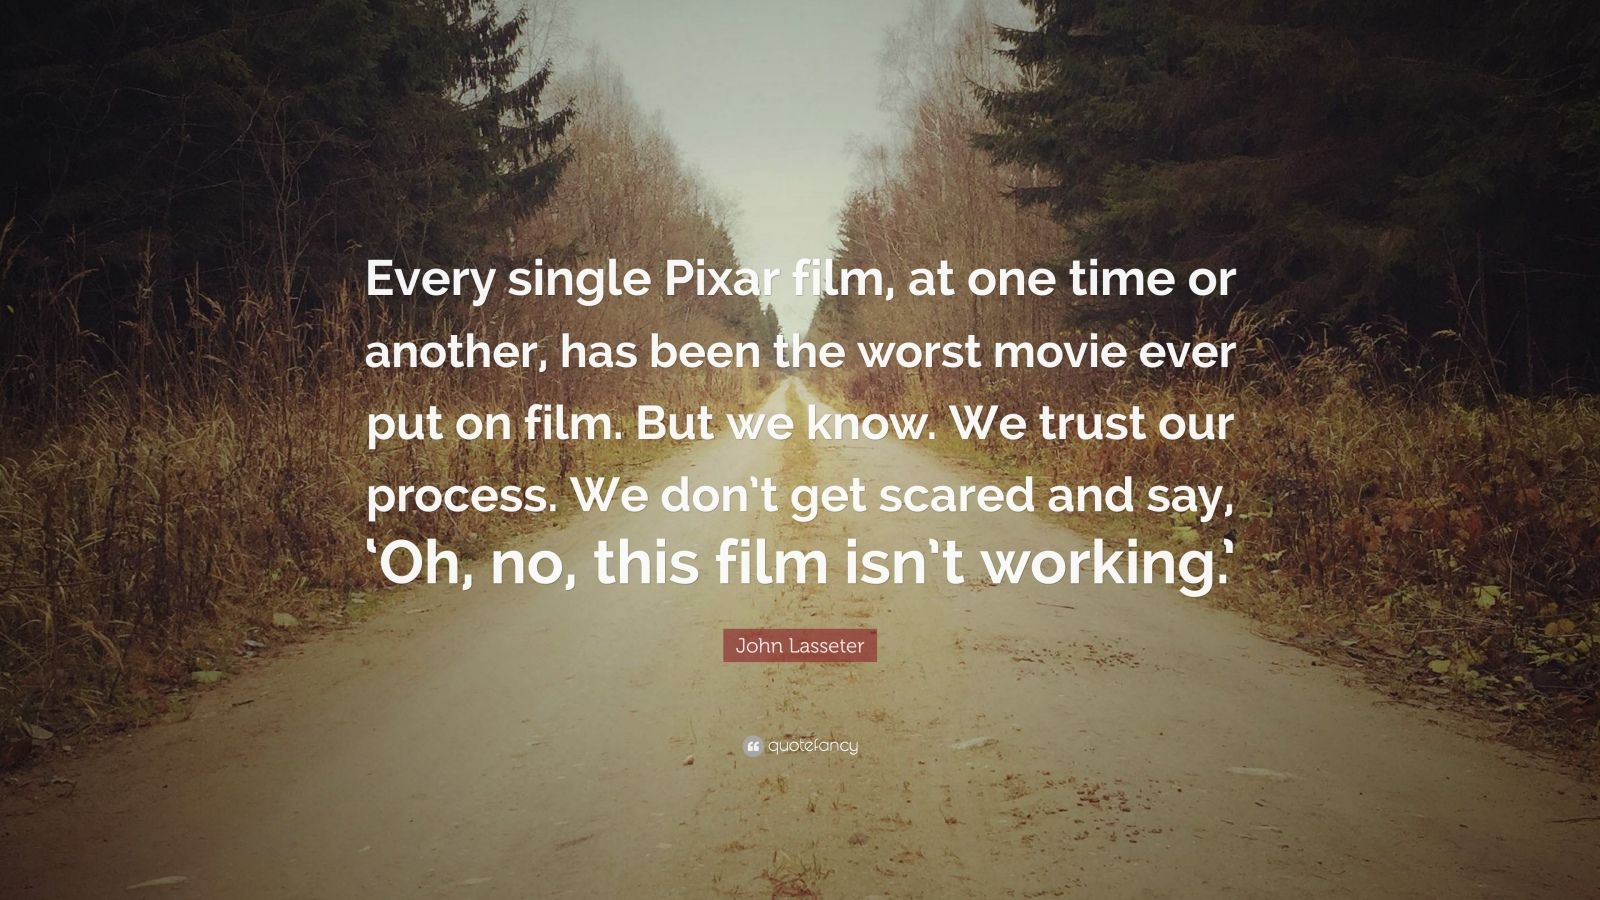 """John Lasseter Quote: """"Every single Pixar film, at one time or another, has been the worst movie ever put on film. But we know. We trust our process. We don't get scared and say, 'Oh, no, this film isn't working.'"""""""